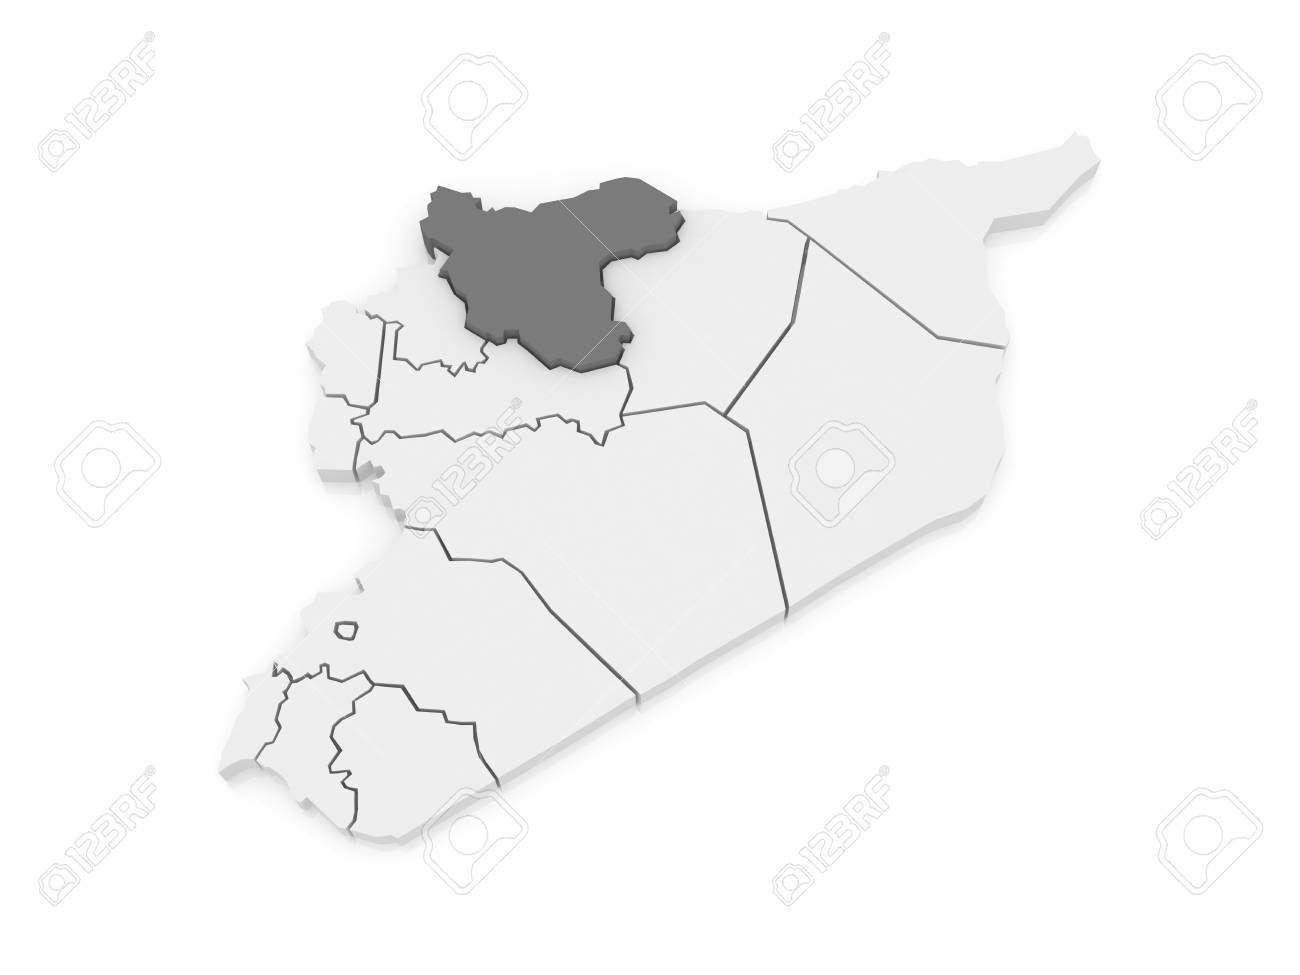 Map of Aleppo (Aleppo). Syria. 3d Aleppo Syria World Map on aleppo on world map, ancient syria map, syria control map, damascus on world map, israel on world map, campinas brazil world map, show my location on map, a old city of damascus syria map, damascus syria world map, syrian civil war map, roman israel map, us airstrikes syria map, syria on world map, syrian refugee map, isil iraq syria map, fighting in damascus syria map, phoenicians ancient civilizations map,